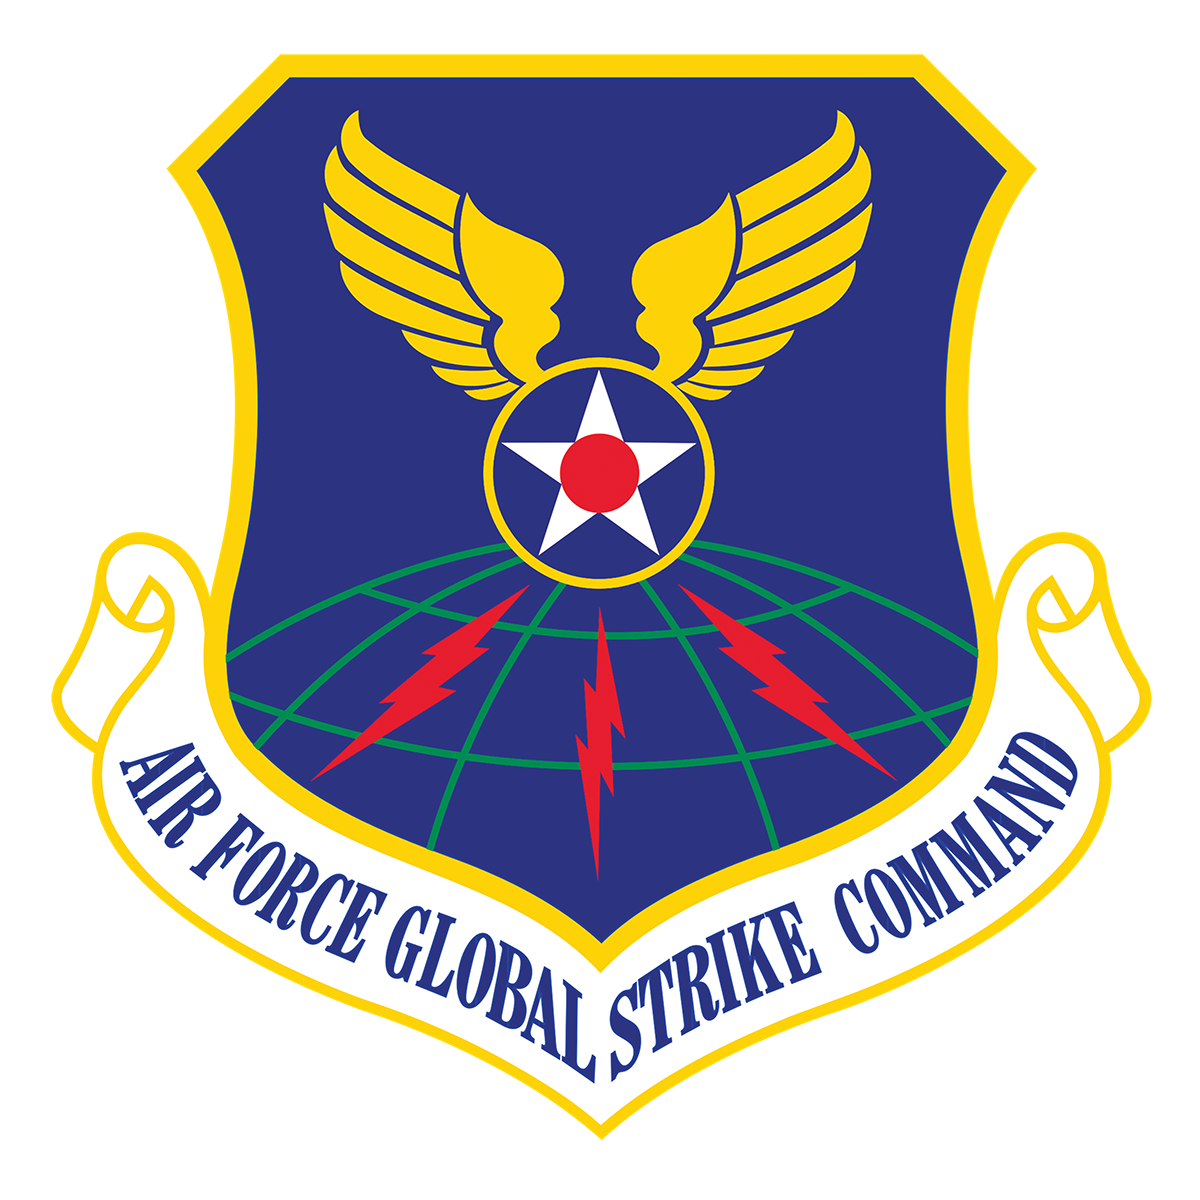 Air Force Global Strike Command Shield